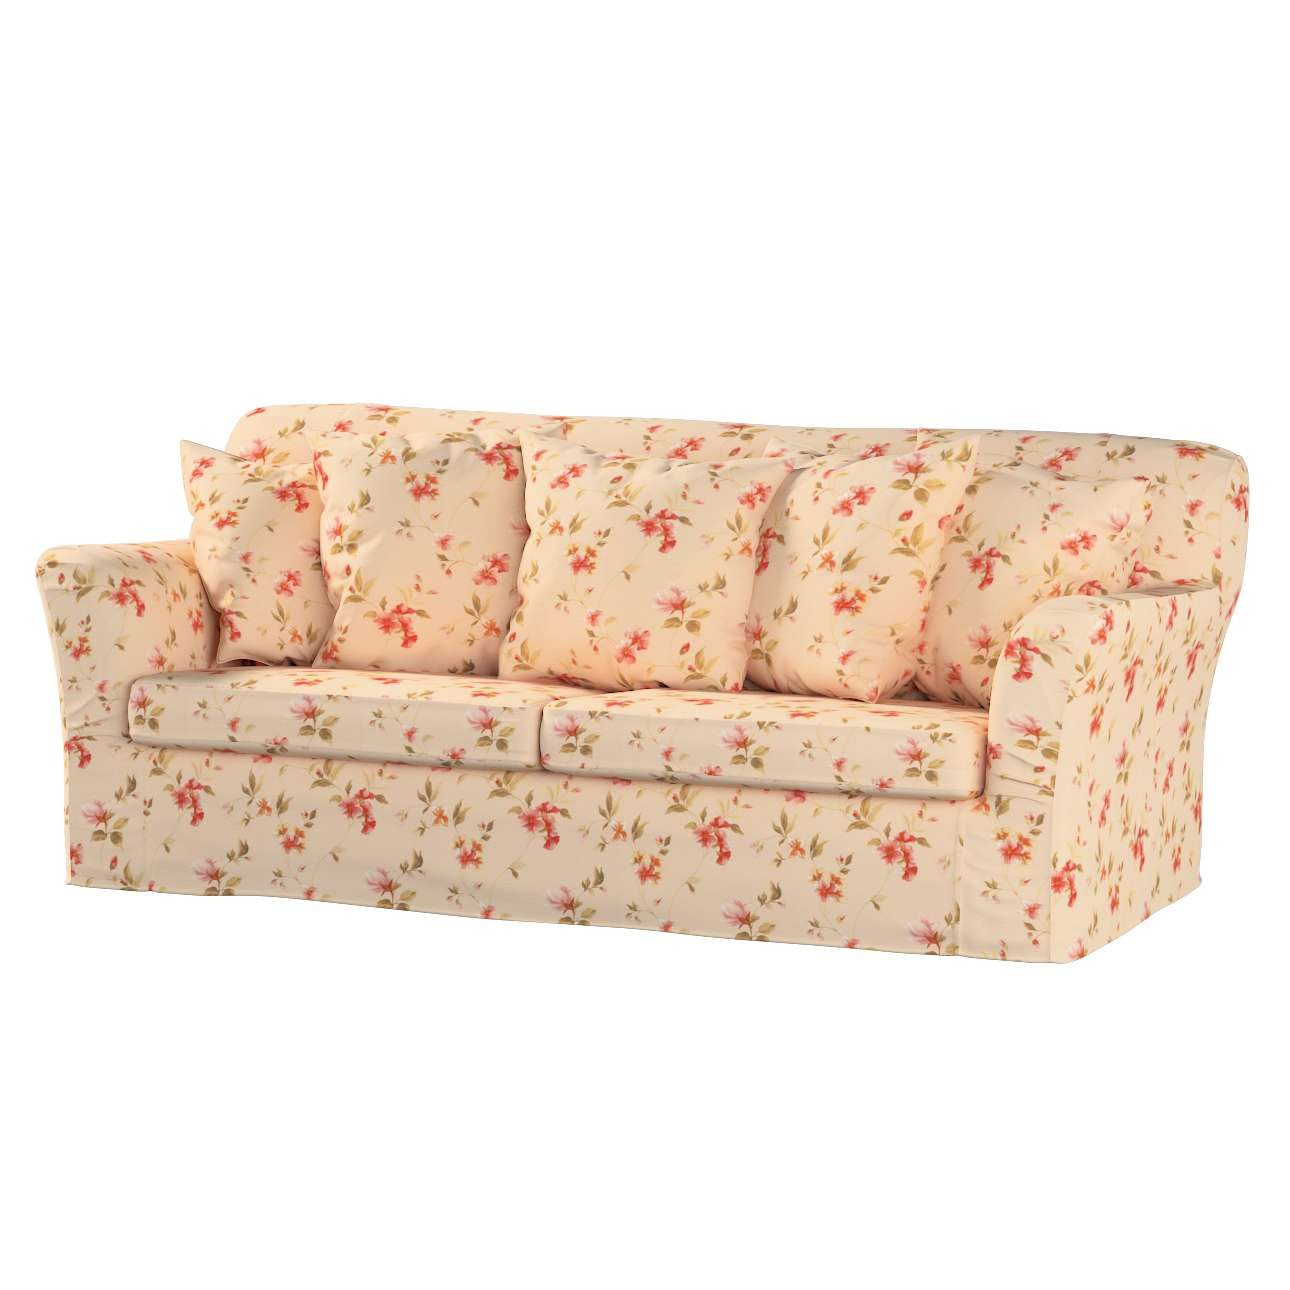 Tomelilla sofa bed cover Tomelilla sofa bed in collection Londres, fabric: 124-05